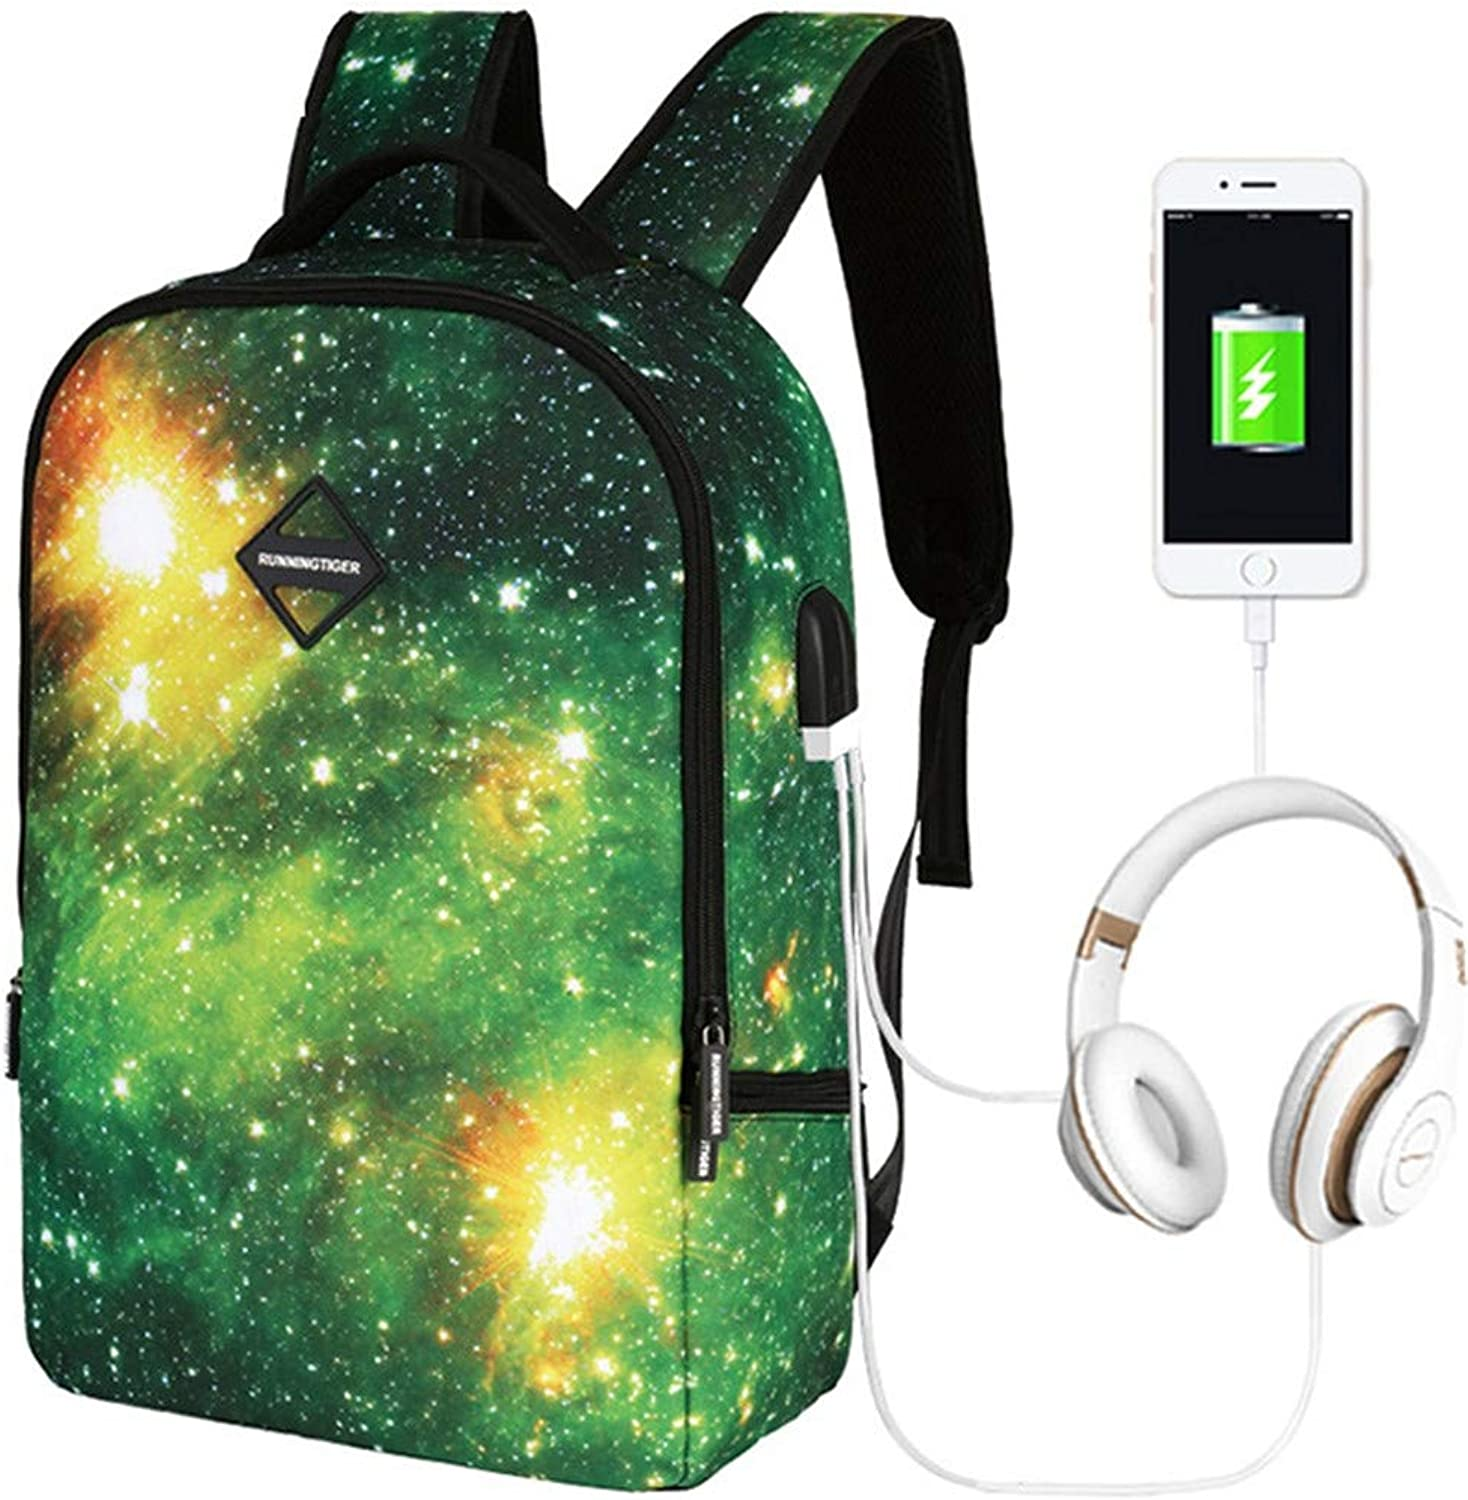 Unisex Nylon Galaxy School Backpack for Boys Girls Laptop Bag Sports Traveling Daypack with USB Charging Port and Headphone Jack